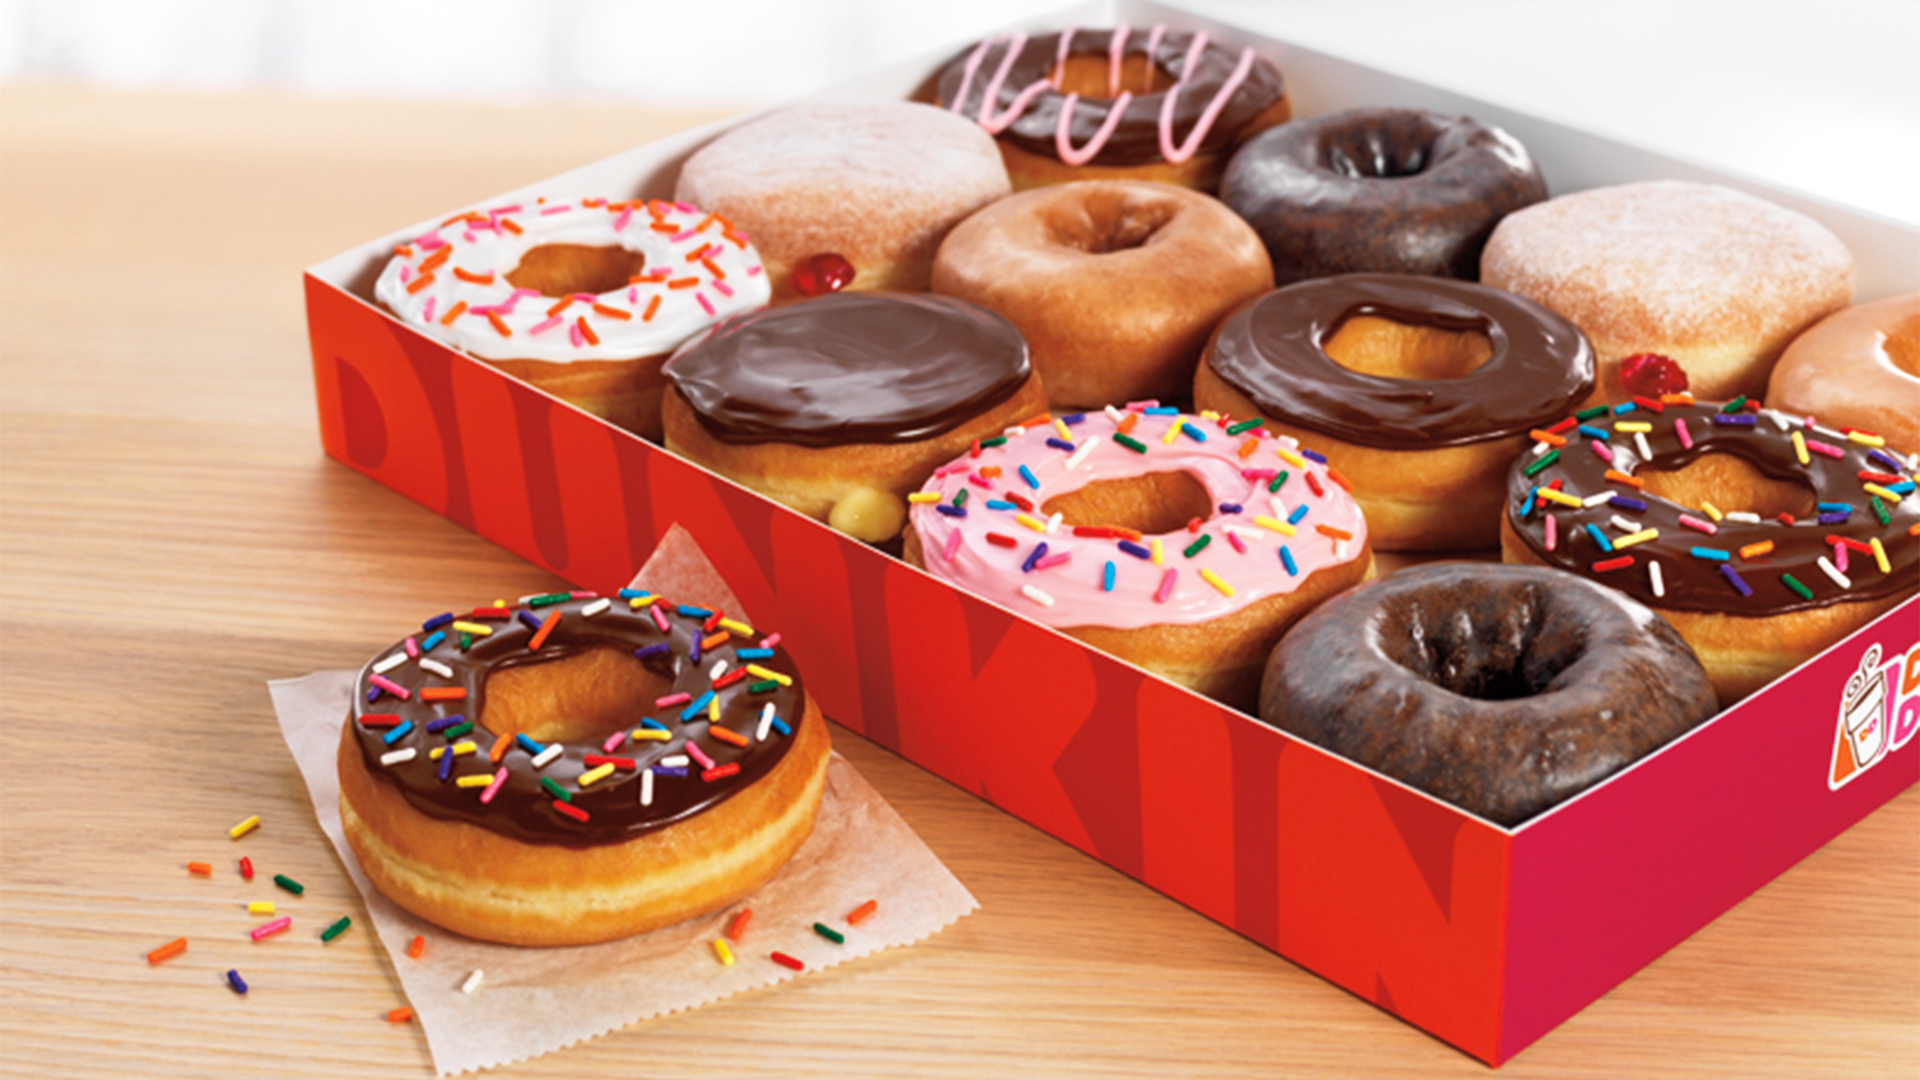 national donut day deals and freebies june 1